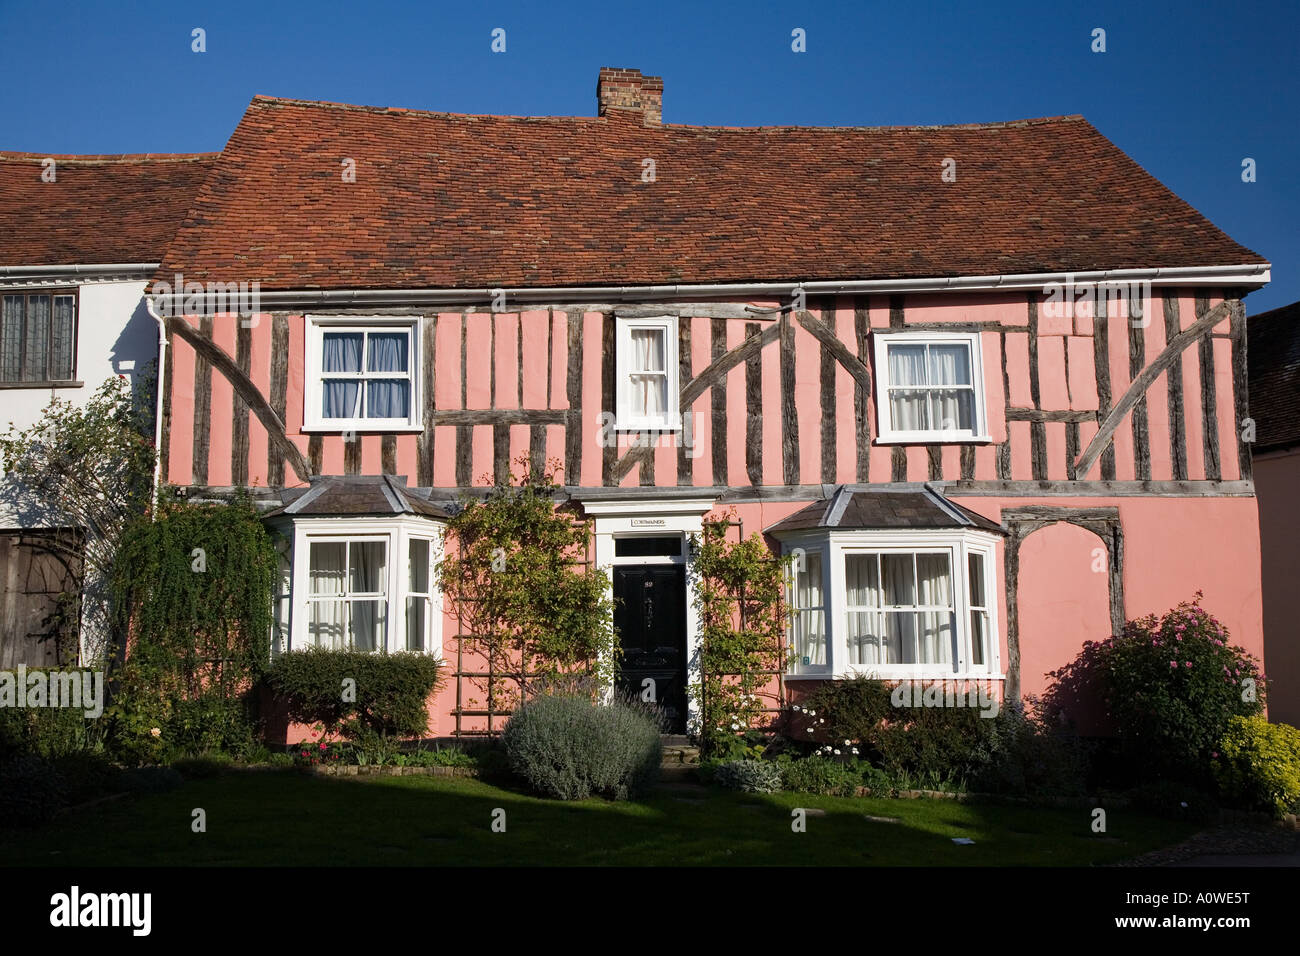 Cordwainers house, Lavenham, Suffolk. - Stock Image